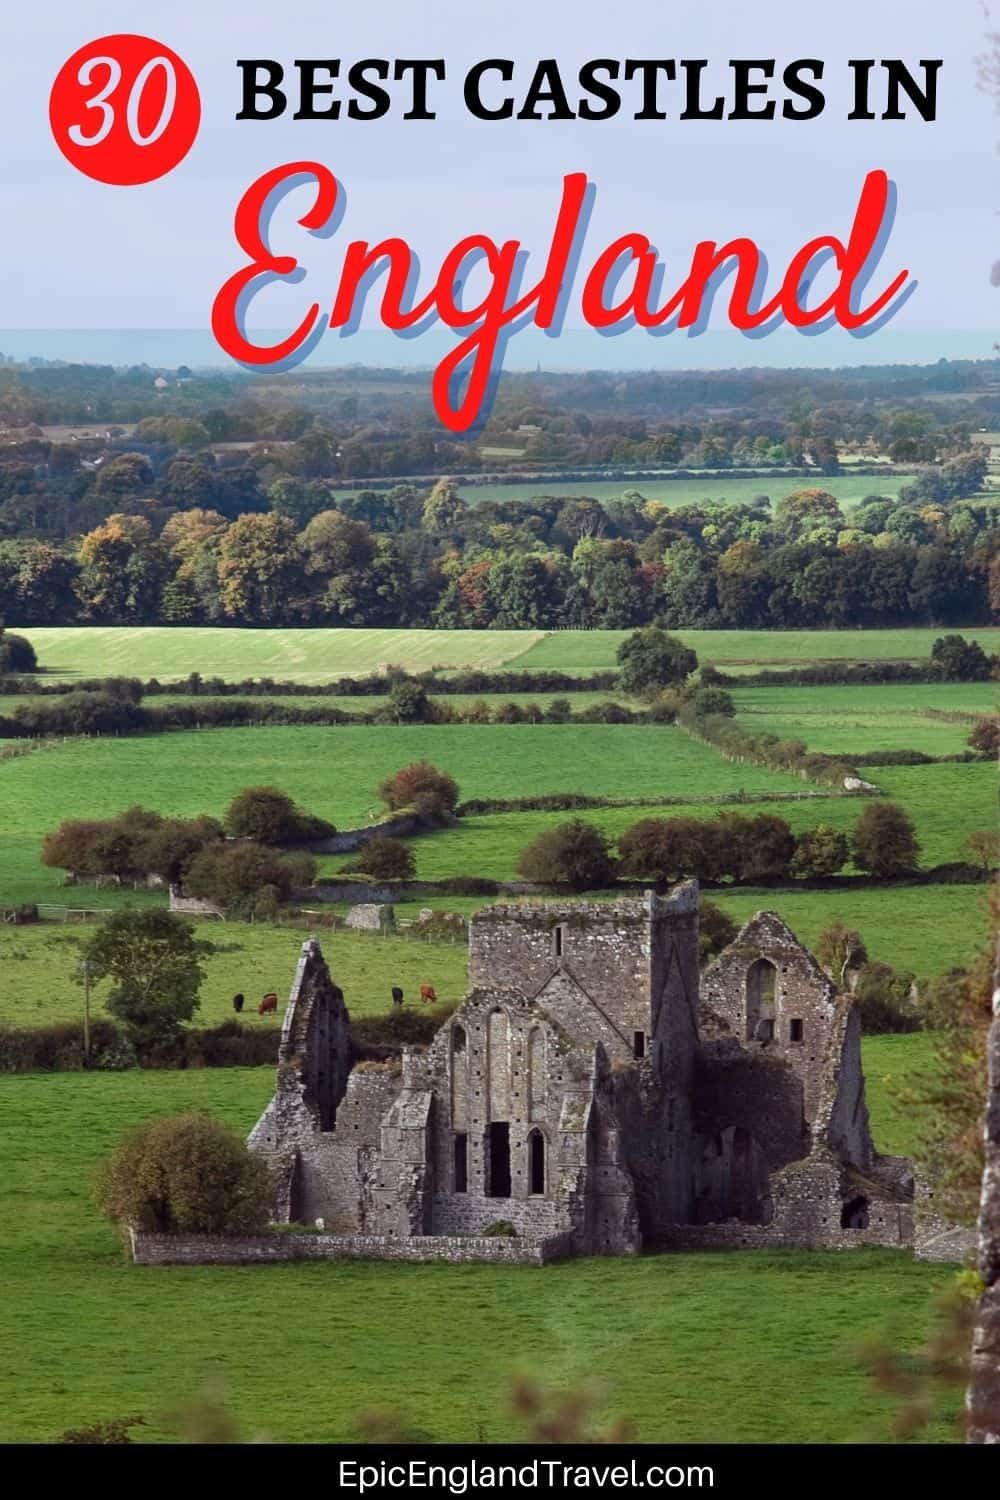 Pinterest image of a castle in England with the text: Best Castles in England